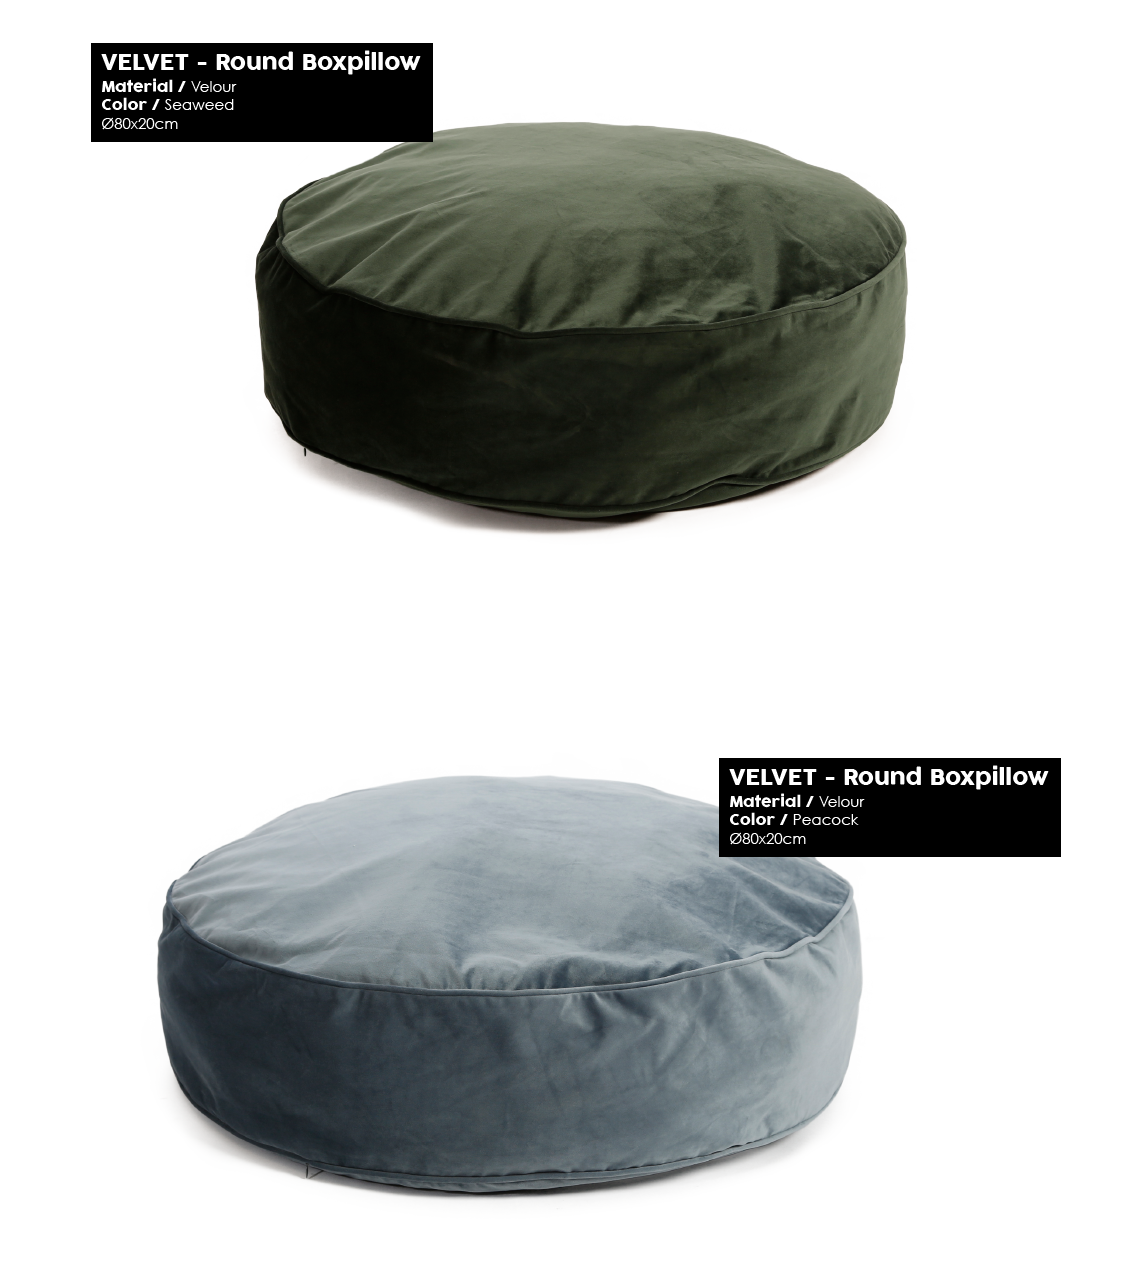 51 degrees north Velvet winter 2018 round boxpillow seaweed peacock